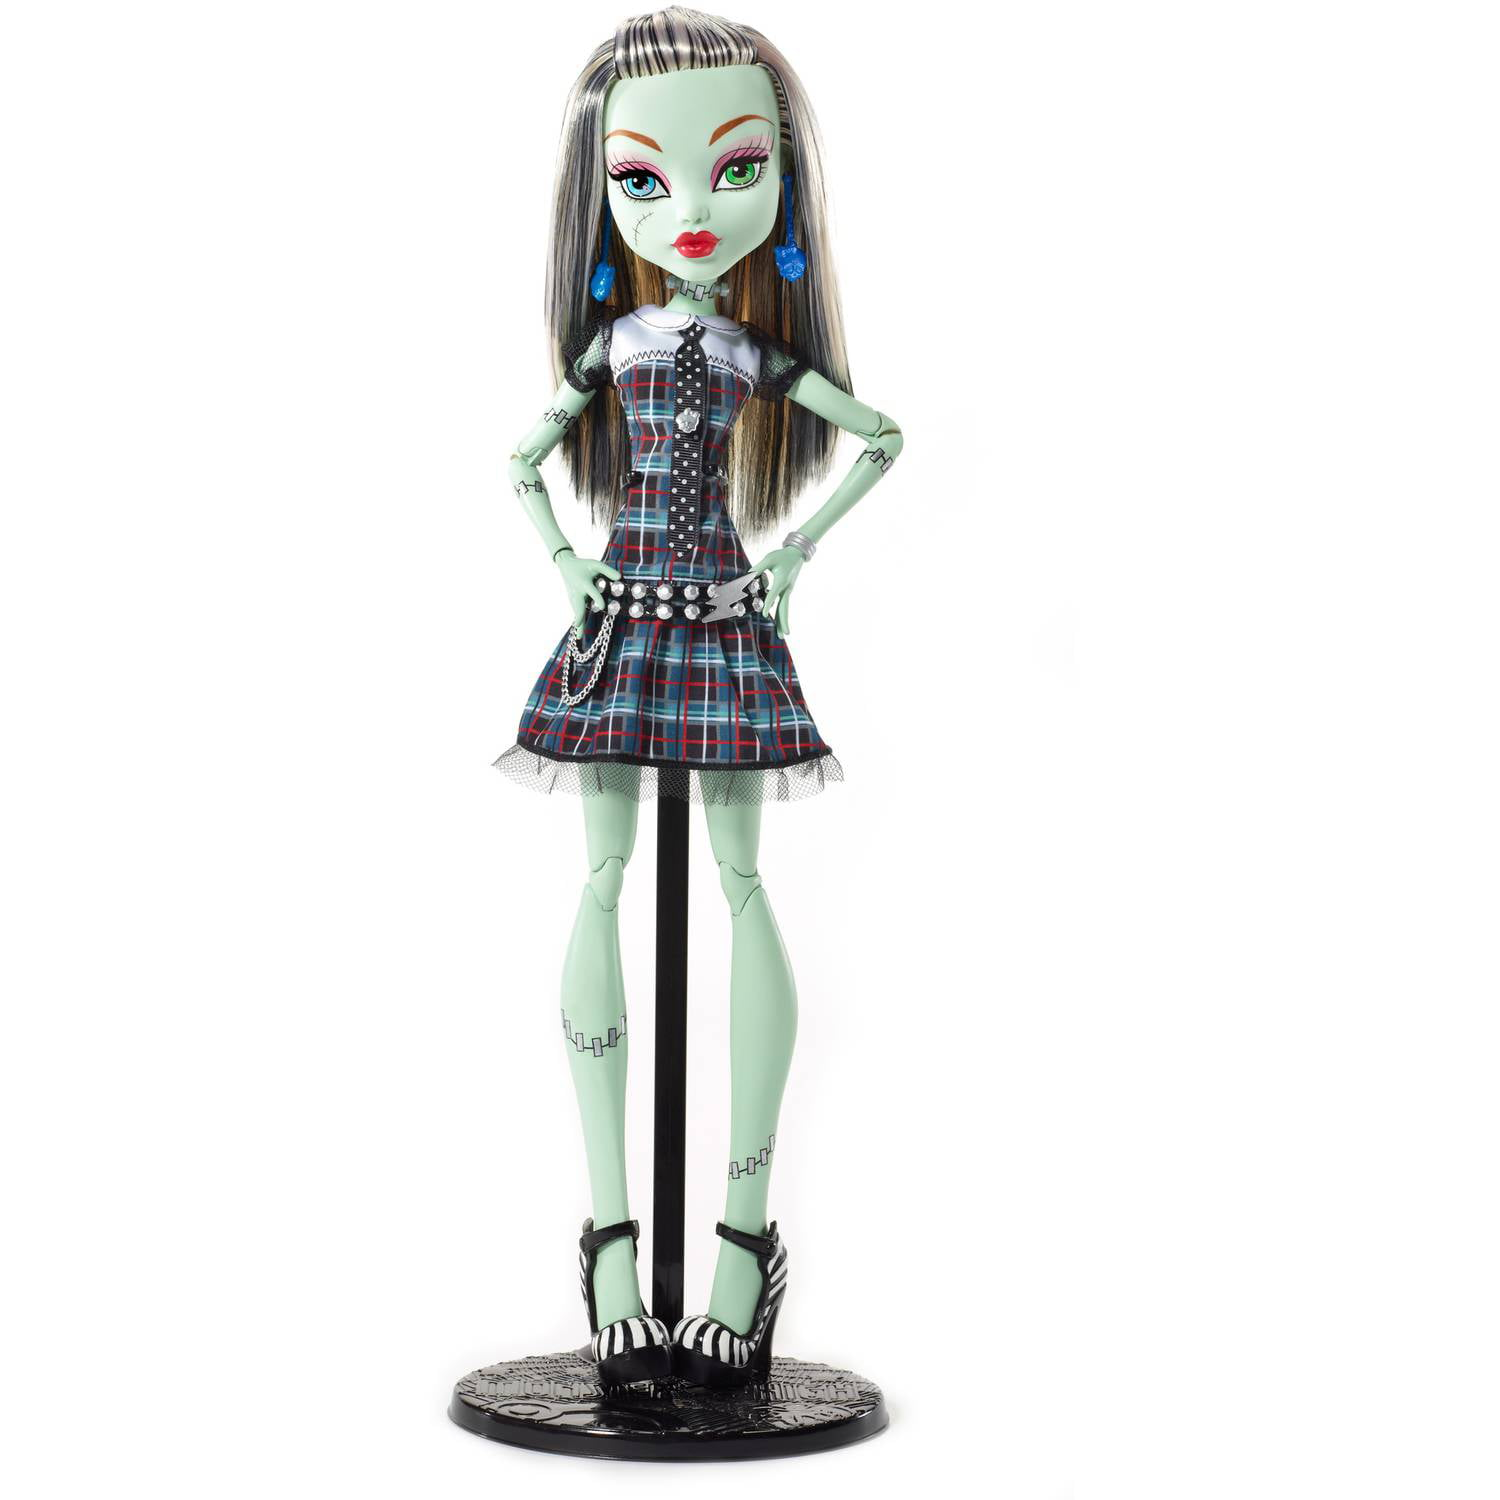 Monster High Frightfully Tall Ghouls' Frankie Stein Doll by Mattel